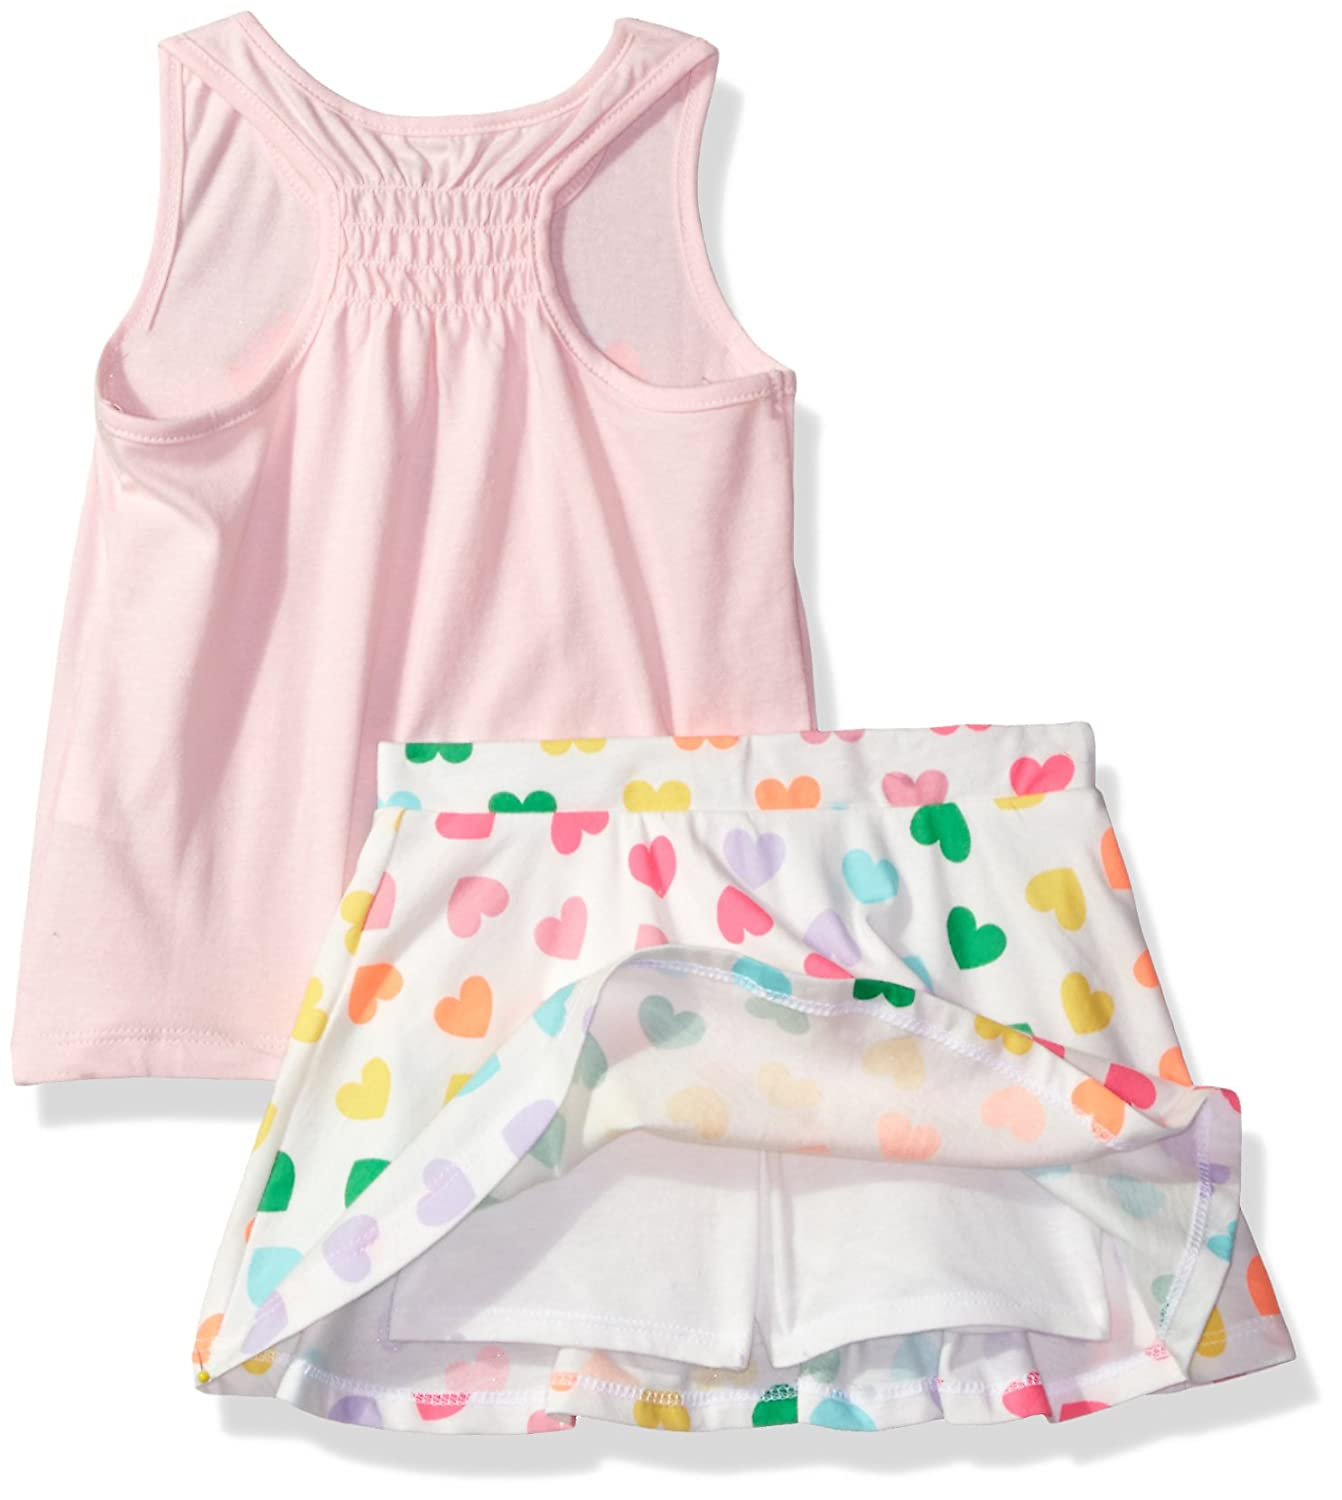 The Childrens Place Girls Sleeveless Top and Tiered Skirt Outfit Set